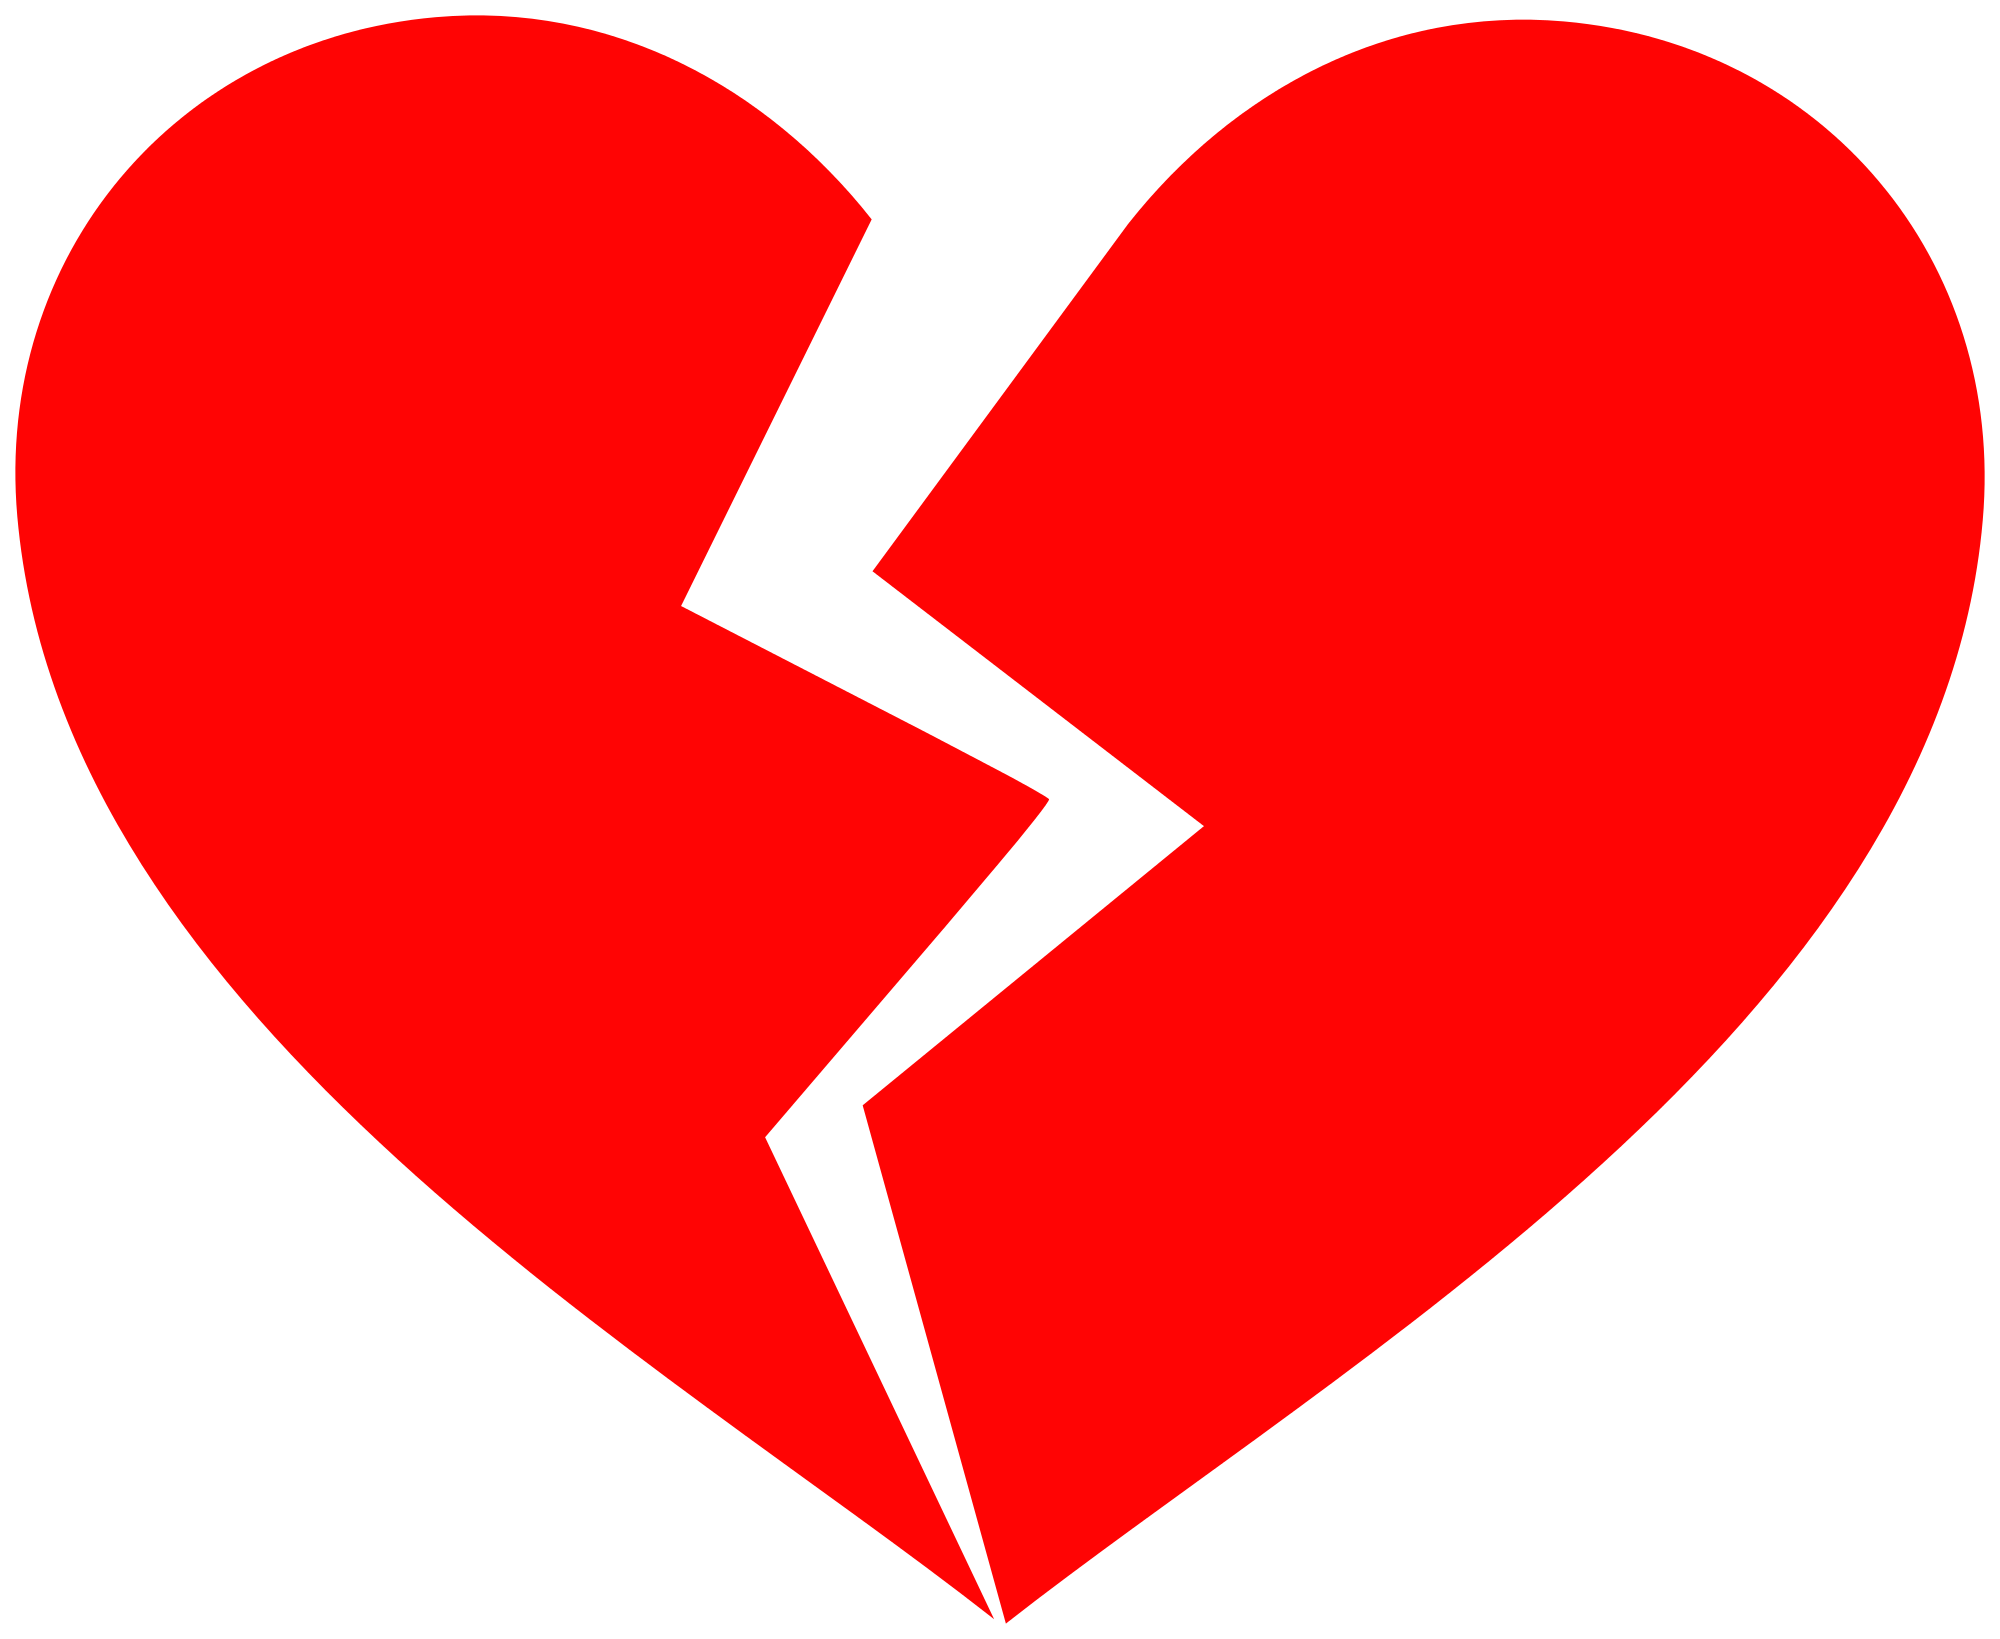 Hd Red Broken Heart Png Transparent Background